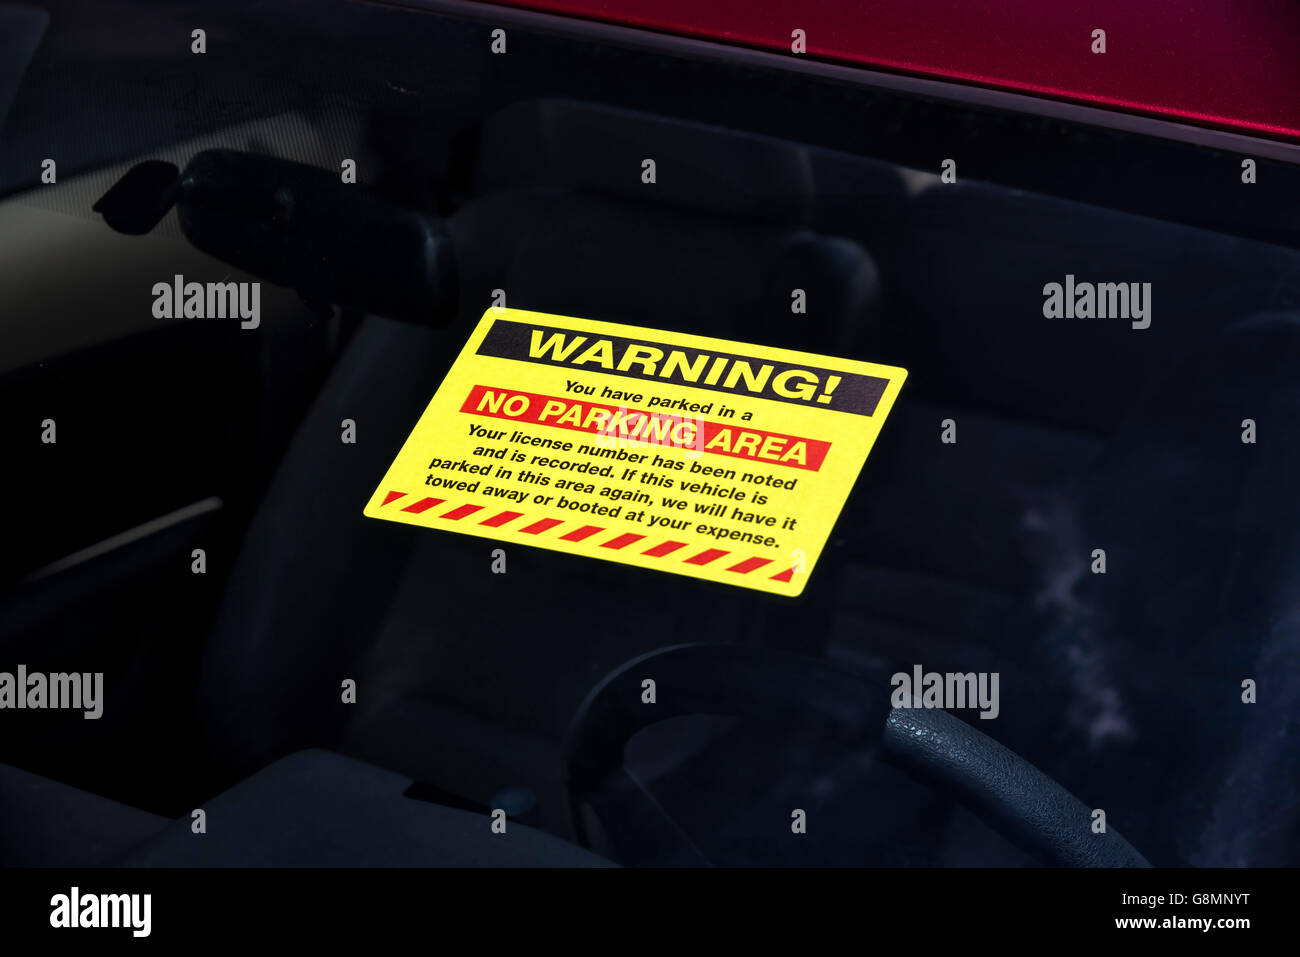 Parking violation sticker on windshield reading WARNING! for illegal parking. - Stock Image